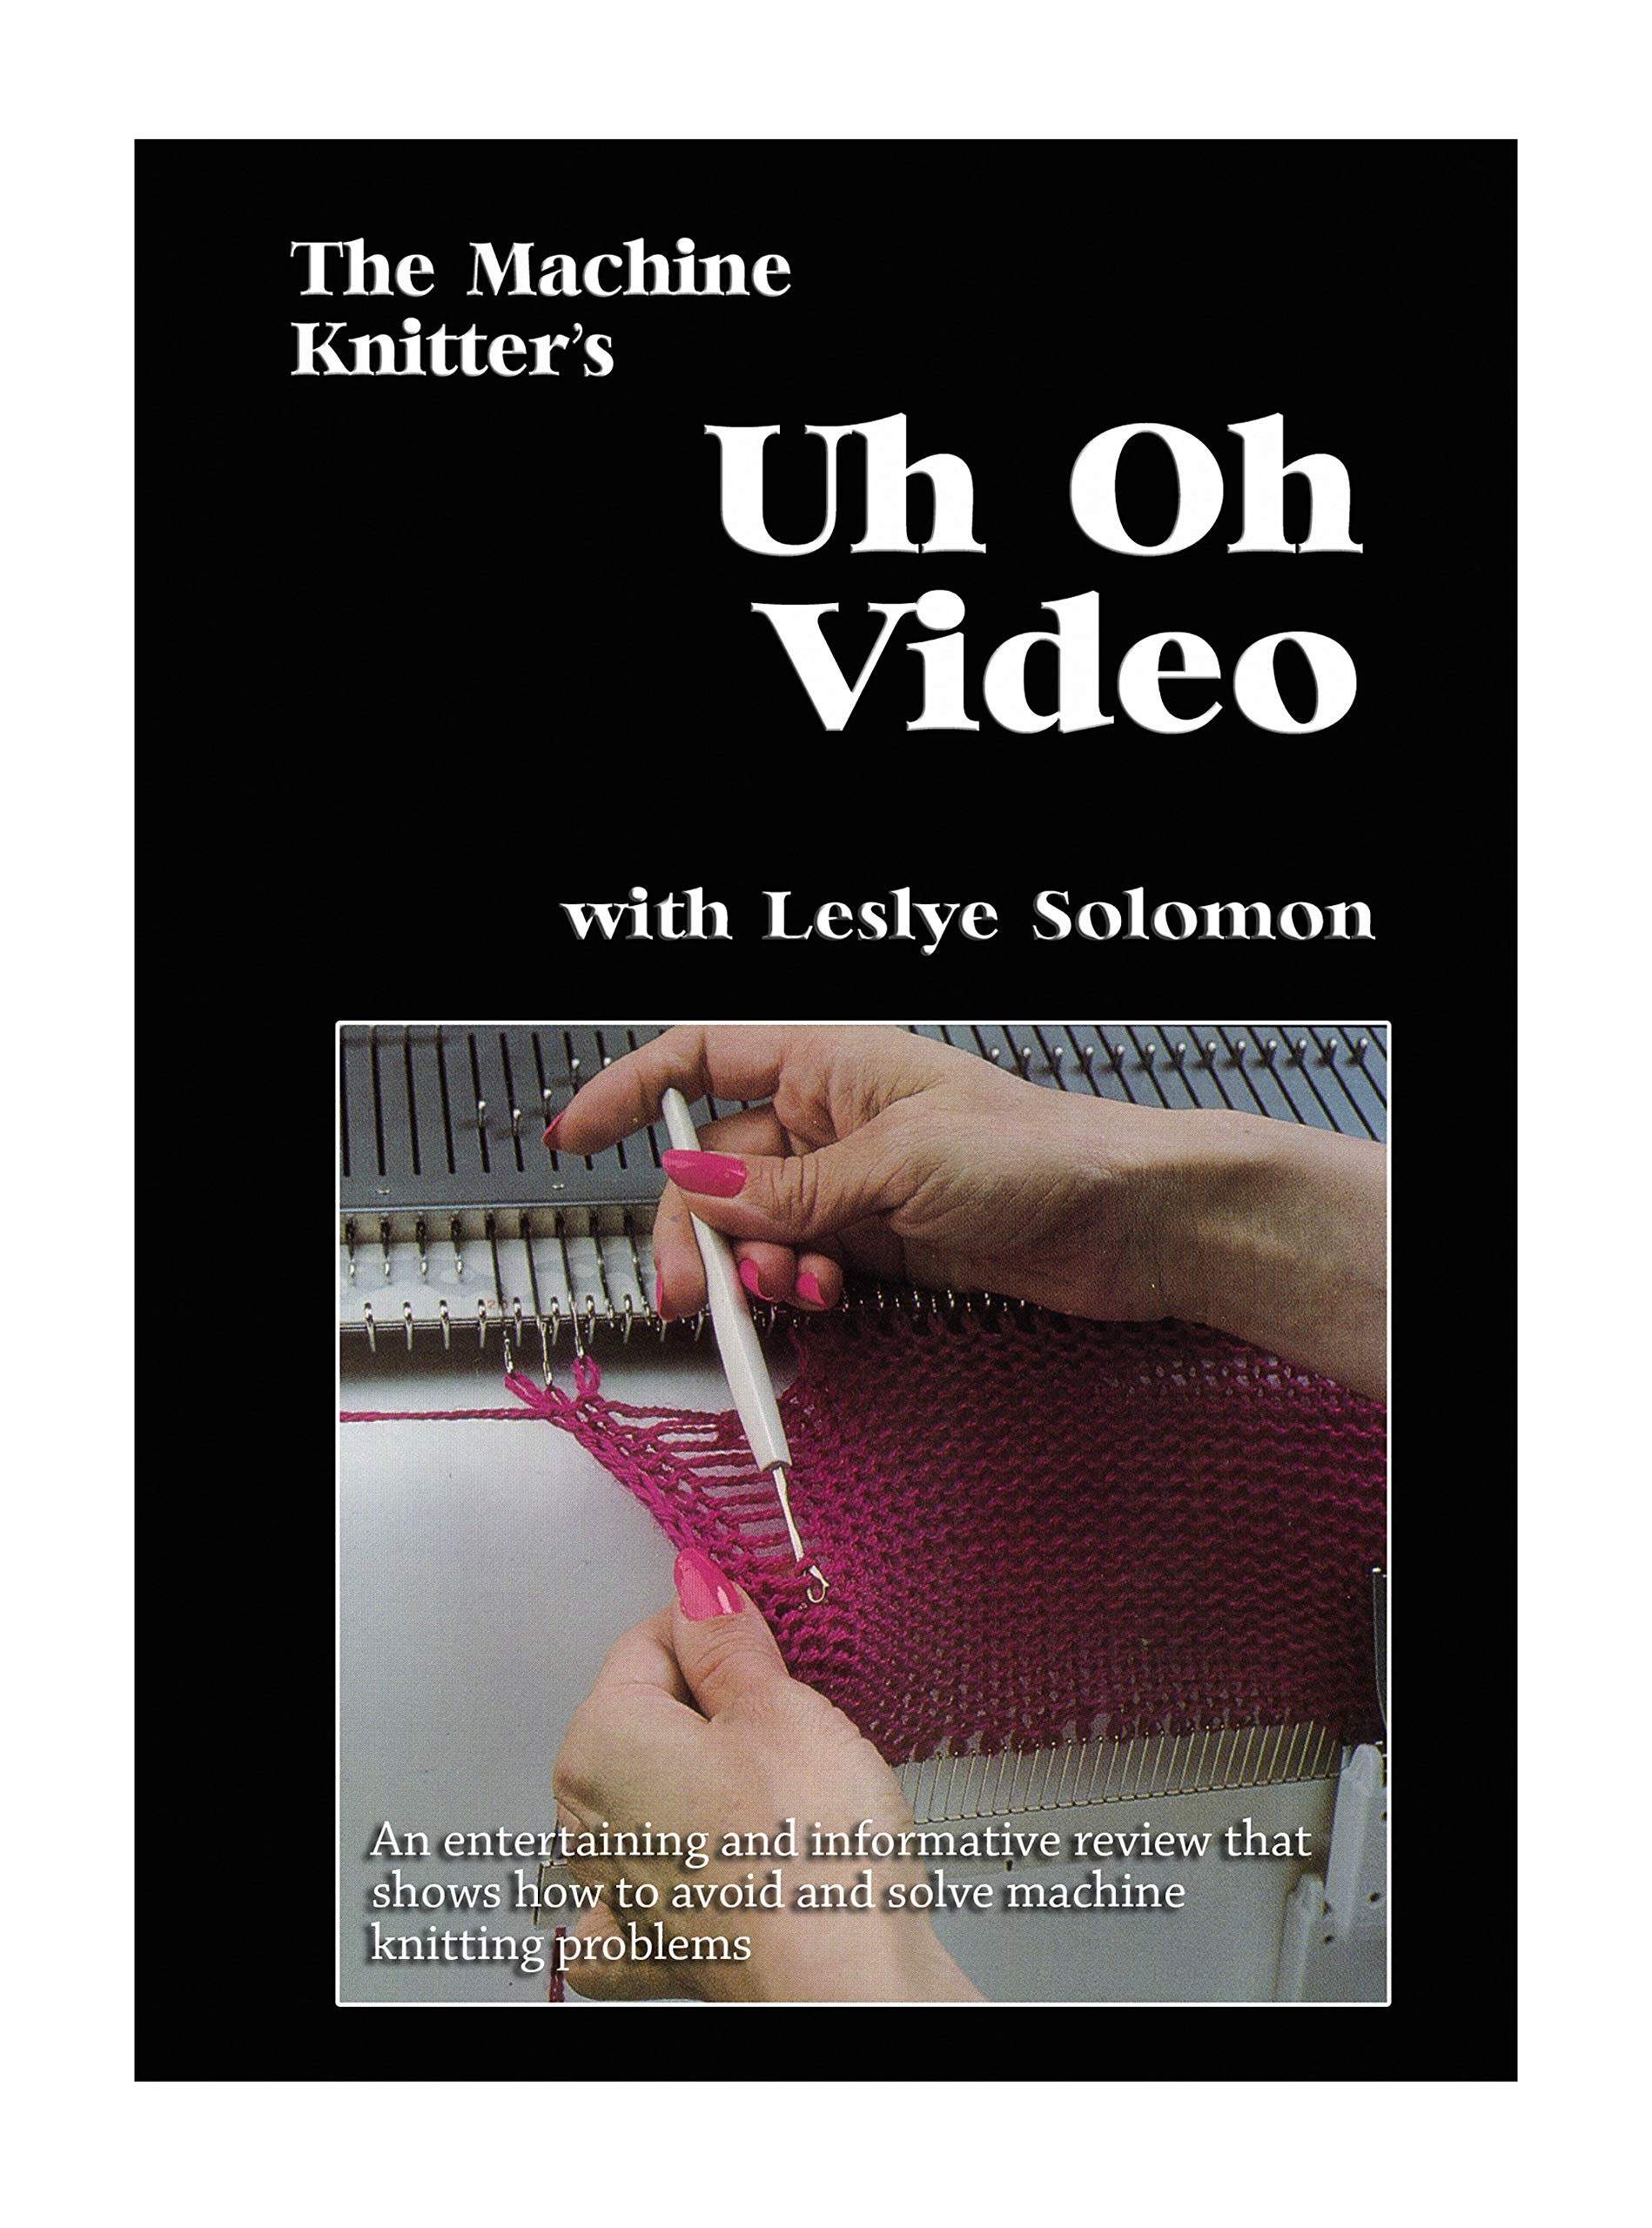 The Machine Knitter's Uh Oh Video (DVD) with Leslye Solomon by Woolstock Up Next Productions (Image #1)